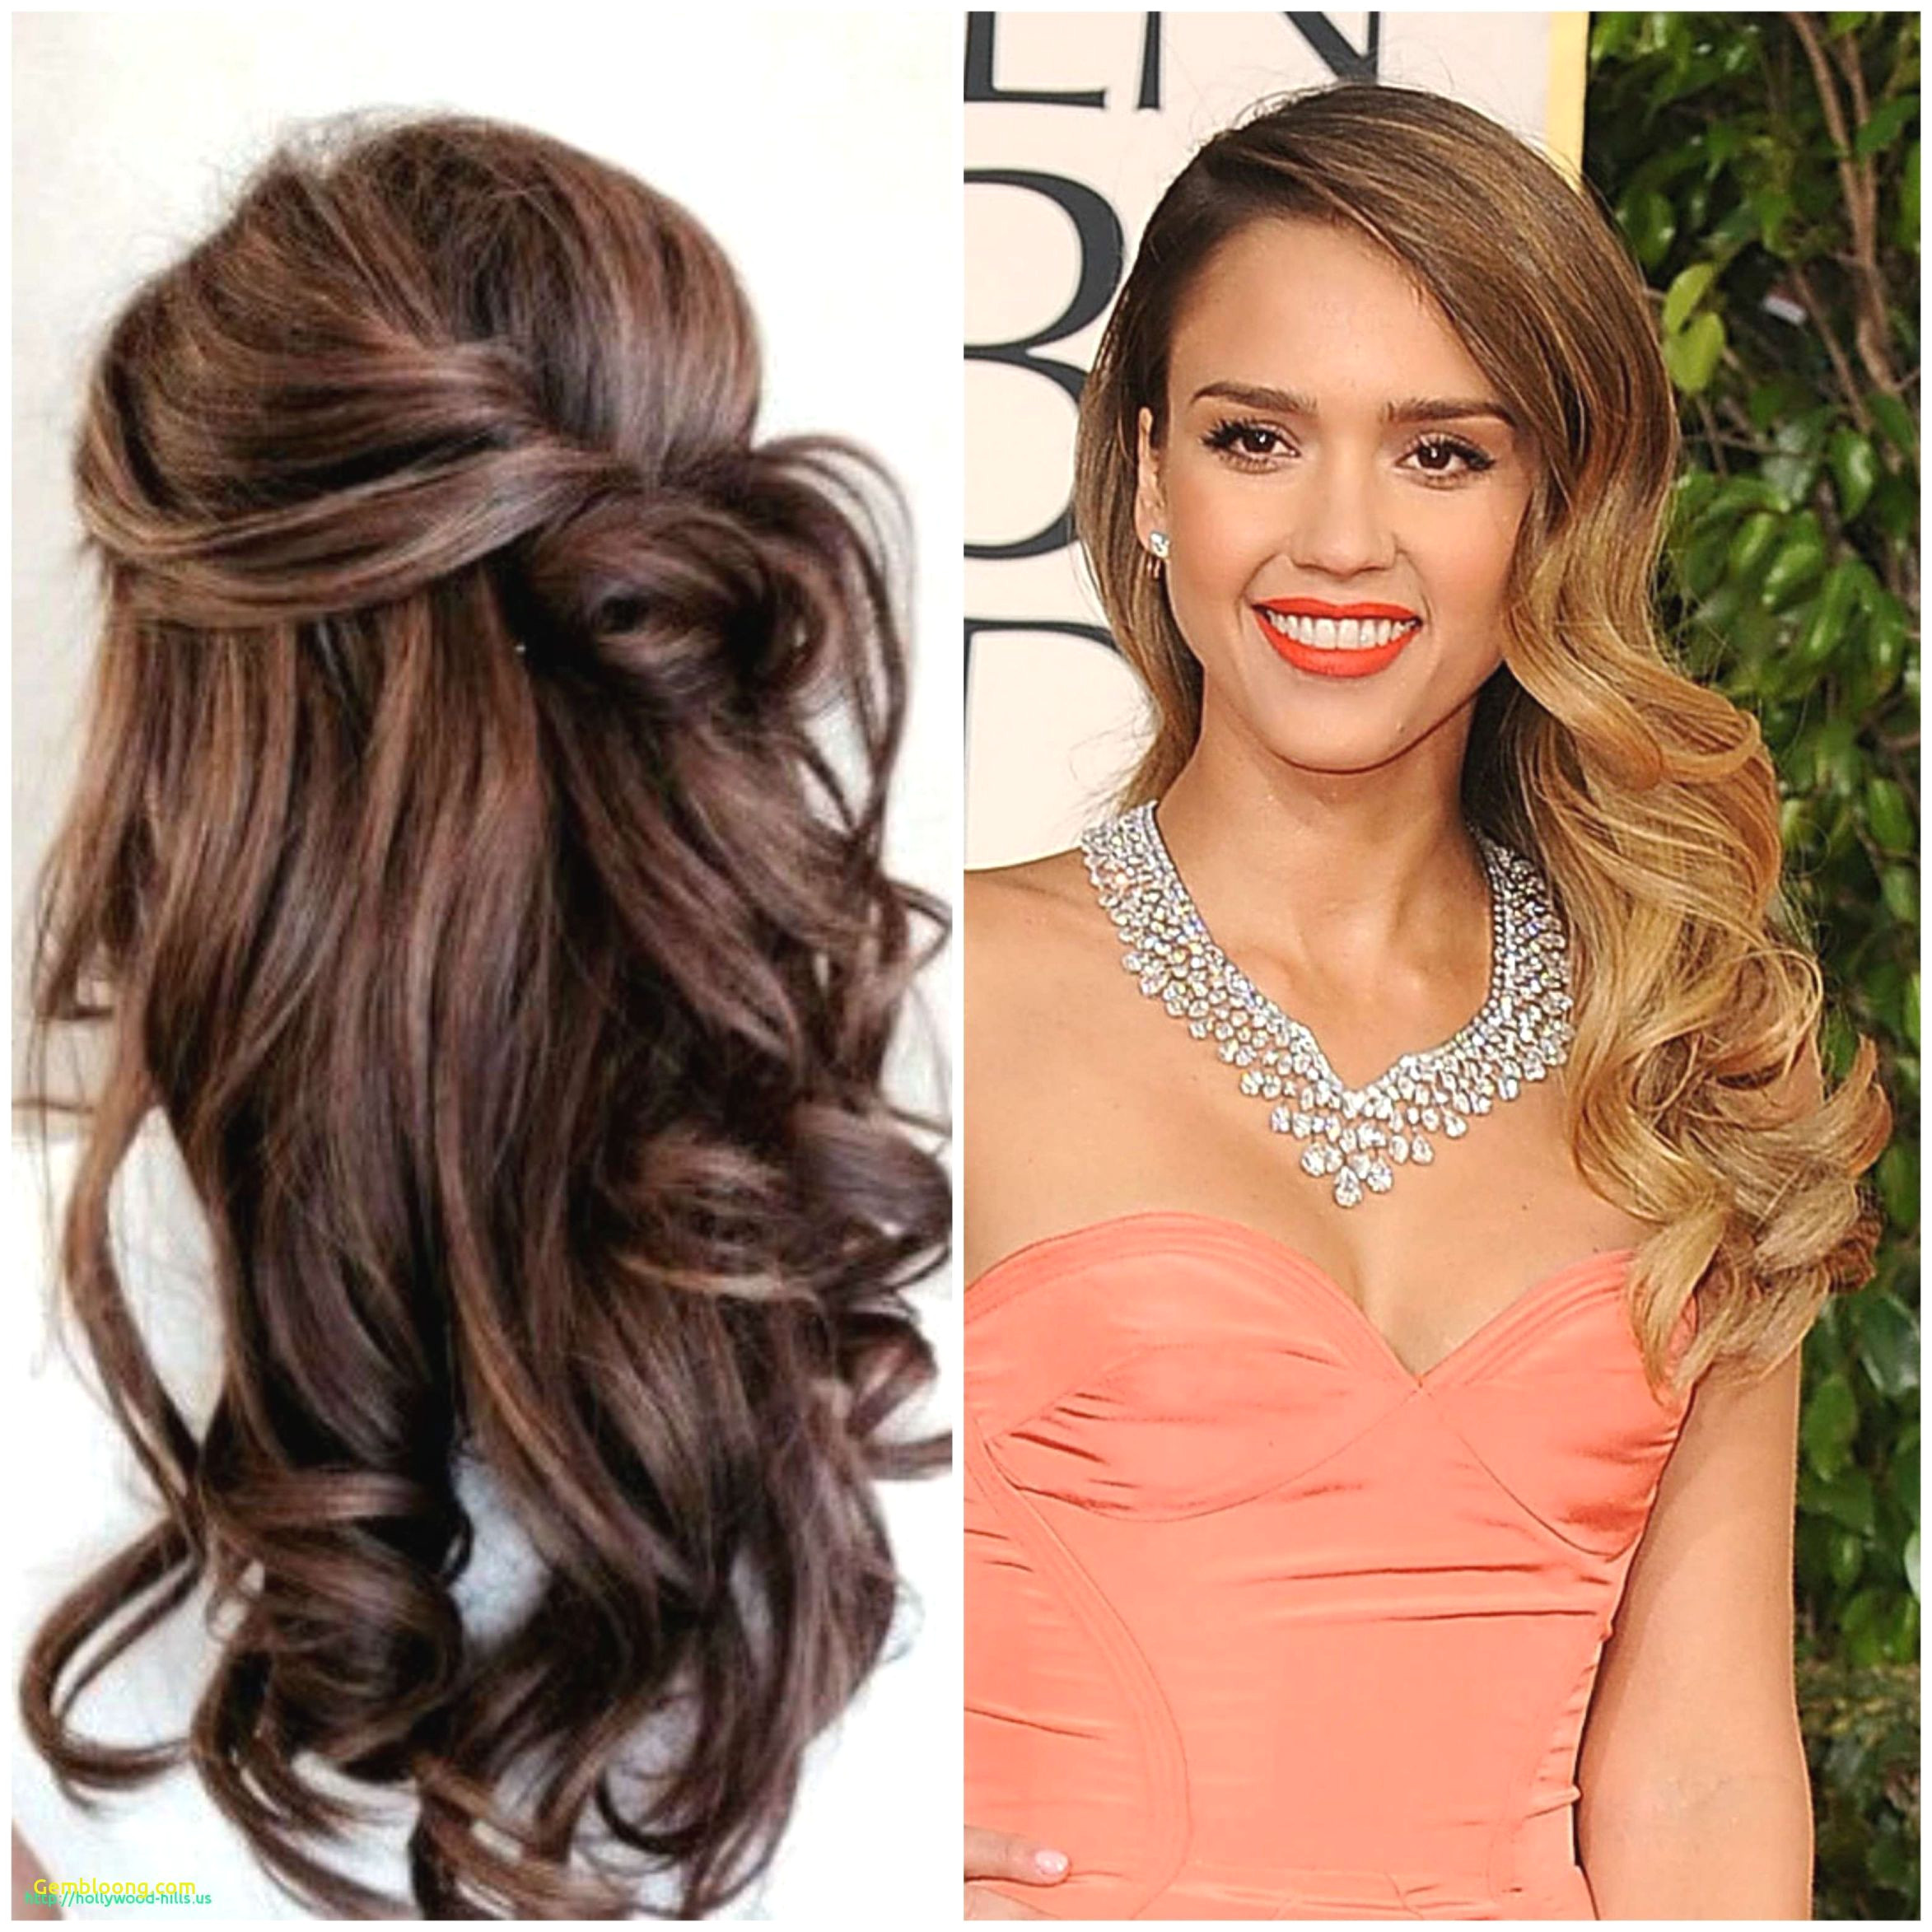 Hairstyles For Long Hair 2015 Luxury I Pinimg 1200x 0d 60 8a Furthermore Human Hair Color Elegant Easy Hairstyles for Short Hair Youtube from